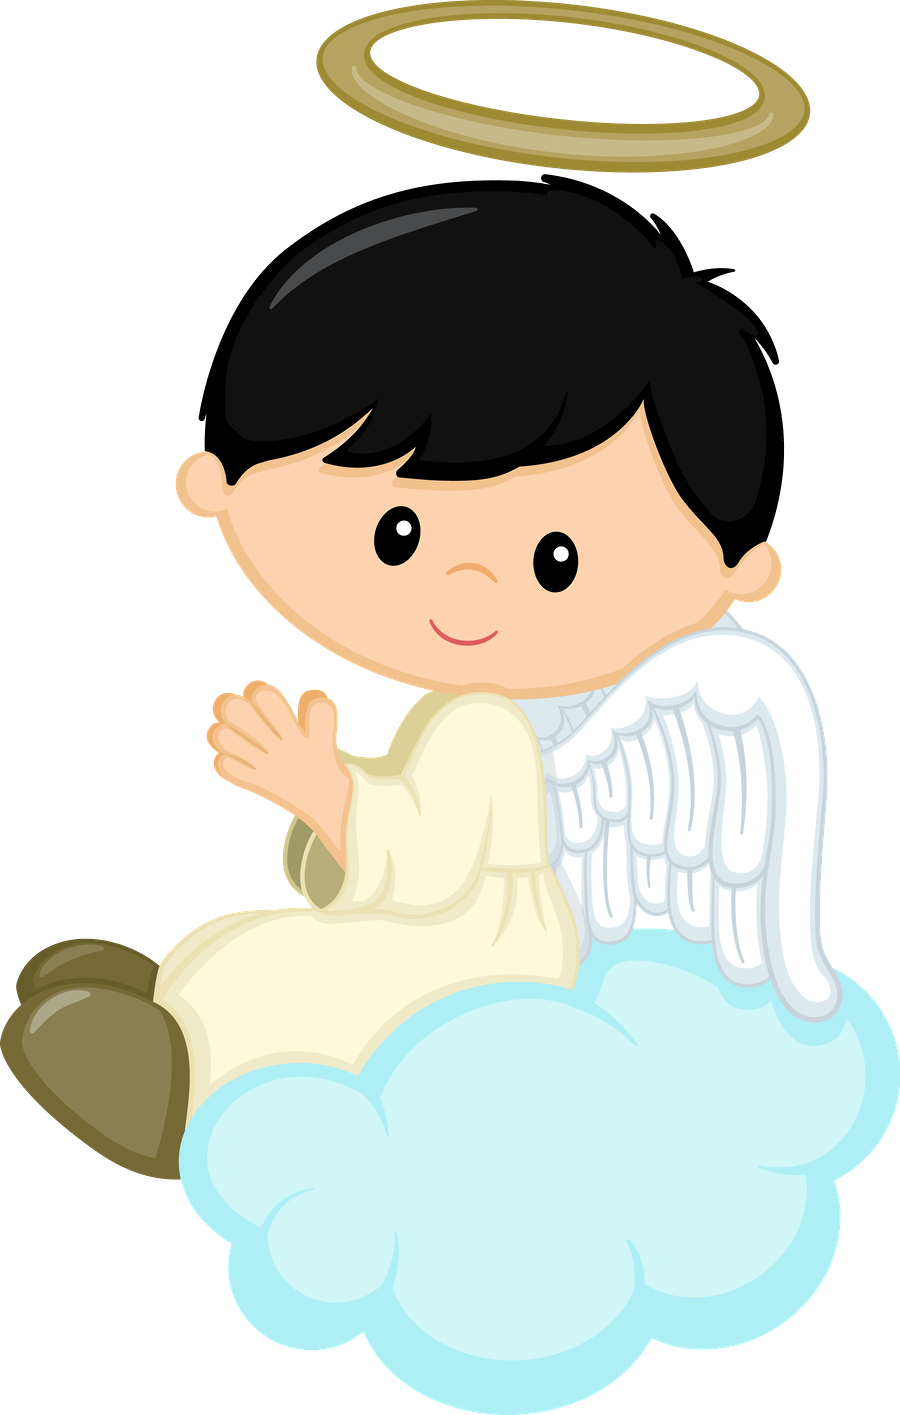 Kid clipart angel. Pin by jeny chique